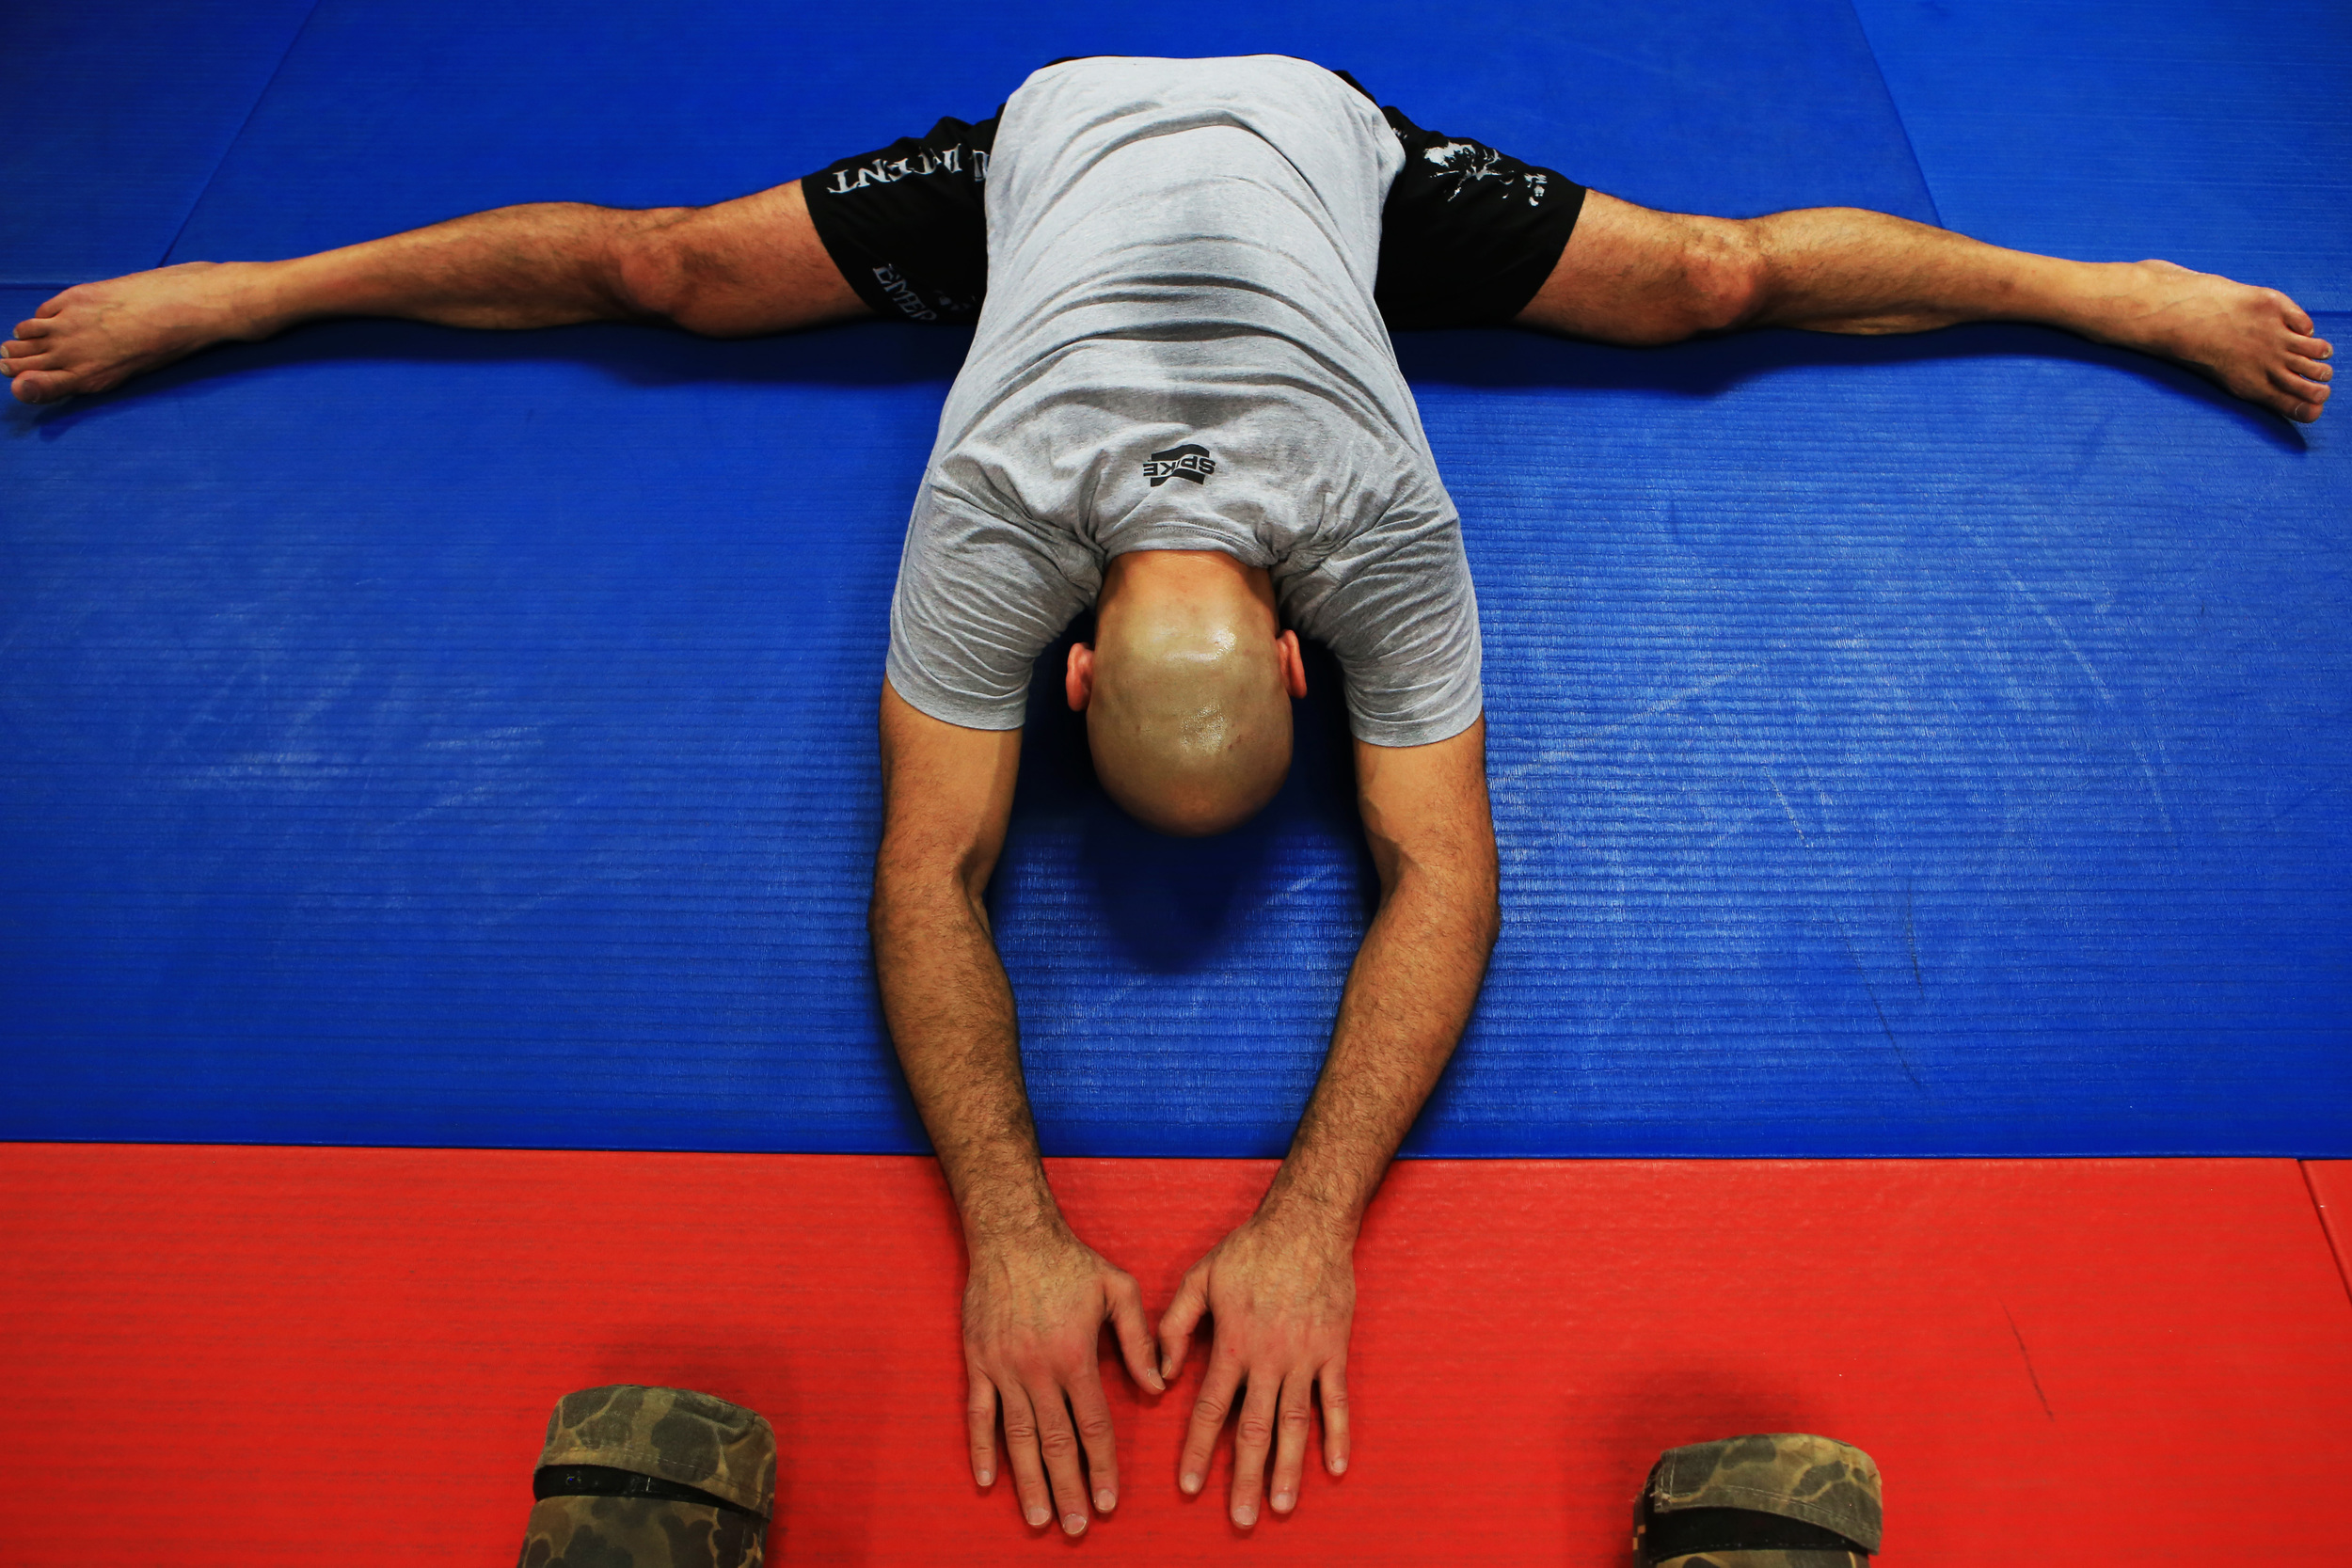 Looking to shake off the rust of more than eight years, Gracie spends time at his gym stretching out his body in preparation for his bout with Shamrock. Like their first two meetings in the days before weight classes in the UFC, Friday's bout at Bellator 149 will be contested at open weight, with Shamrock expected to enter with a significant weight advantage. (©Gail Fisher for ESPN)